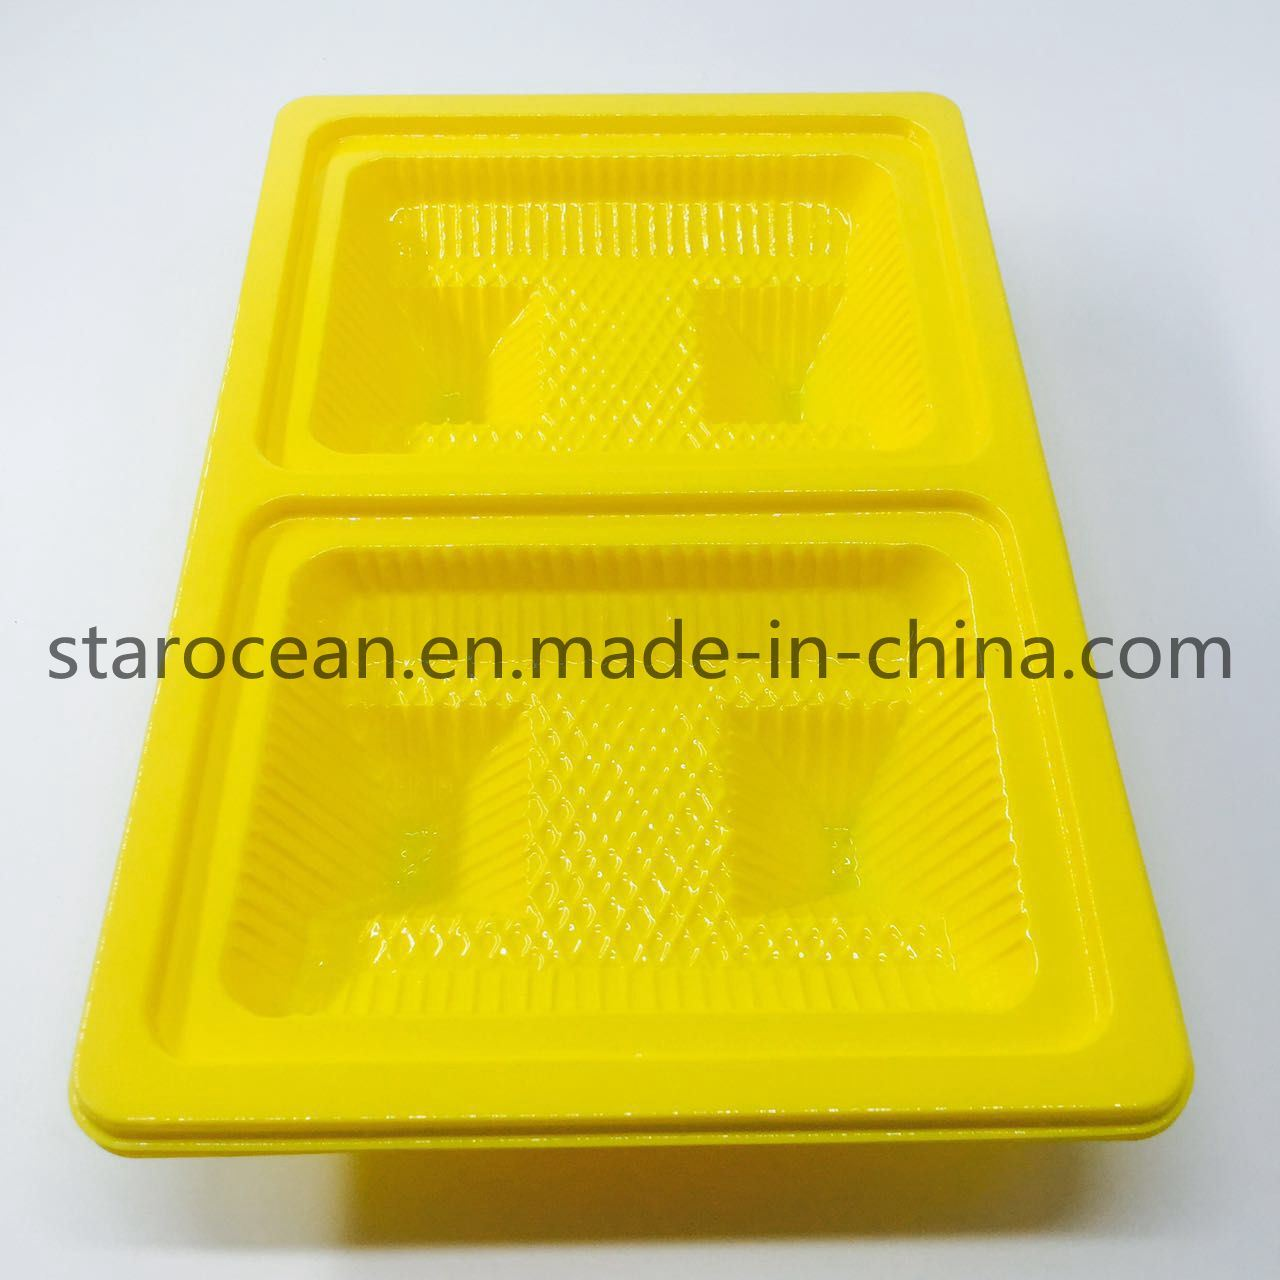 Customized Plastic Packaging PVC Case Tray for Food